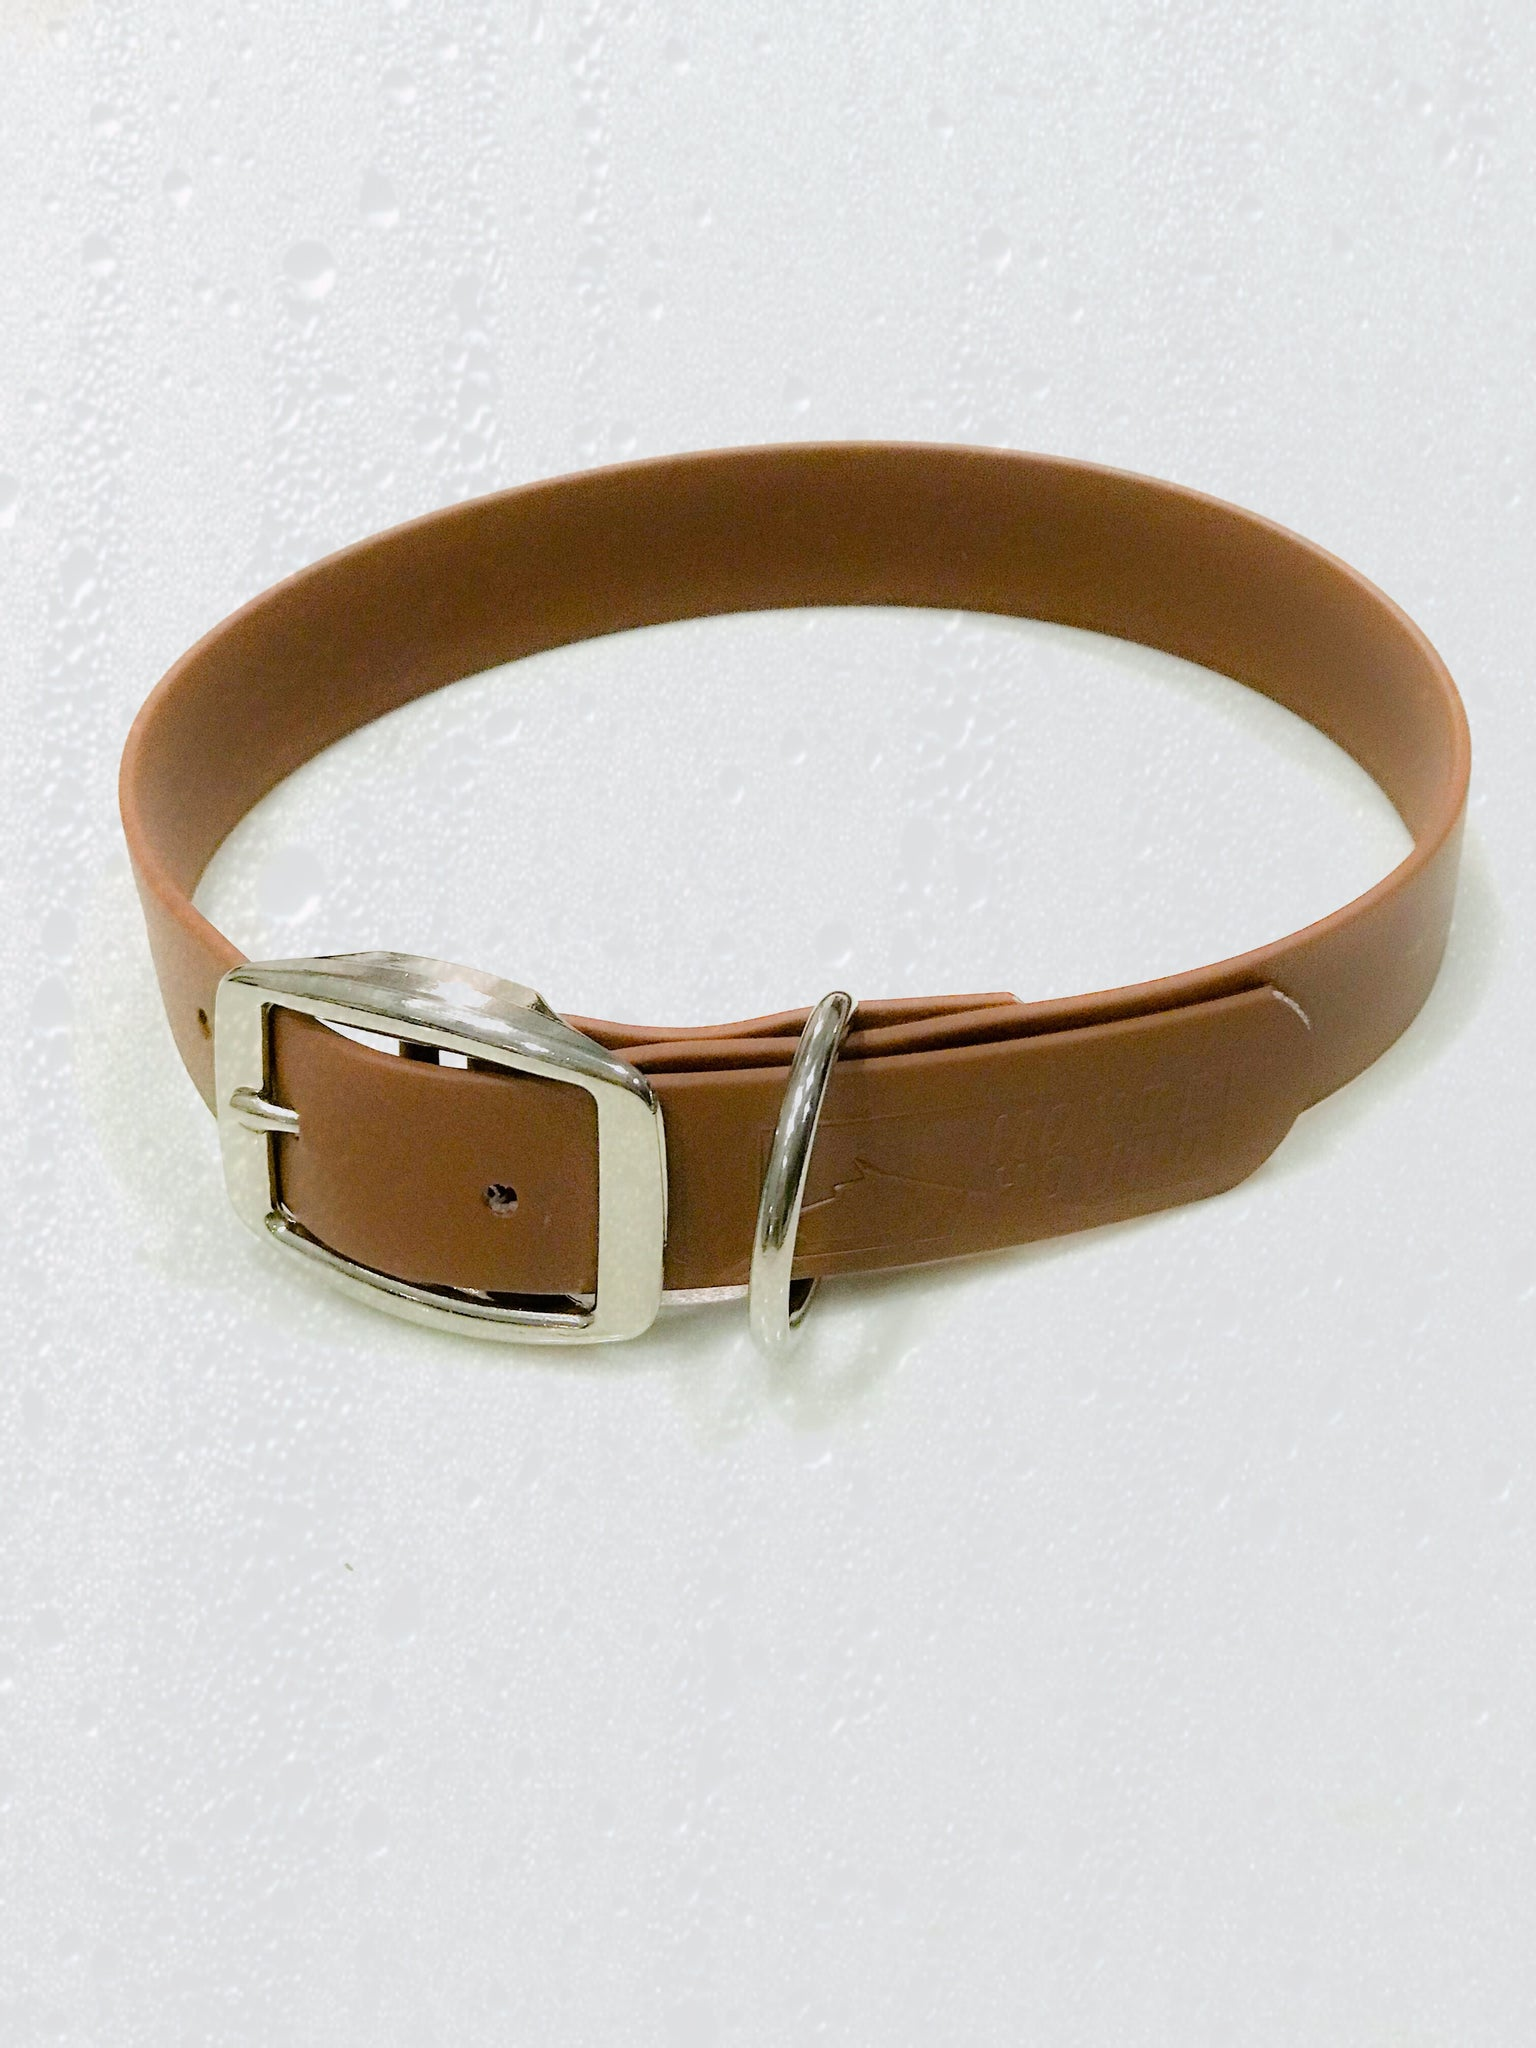 Intertidal Collection™ Tan 1 inch Collar - The Moxie Collection